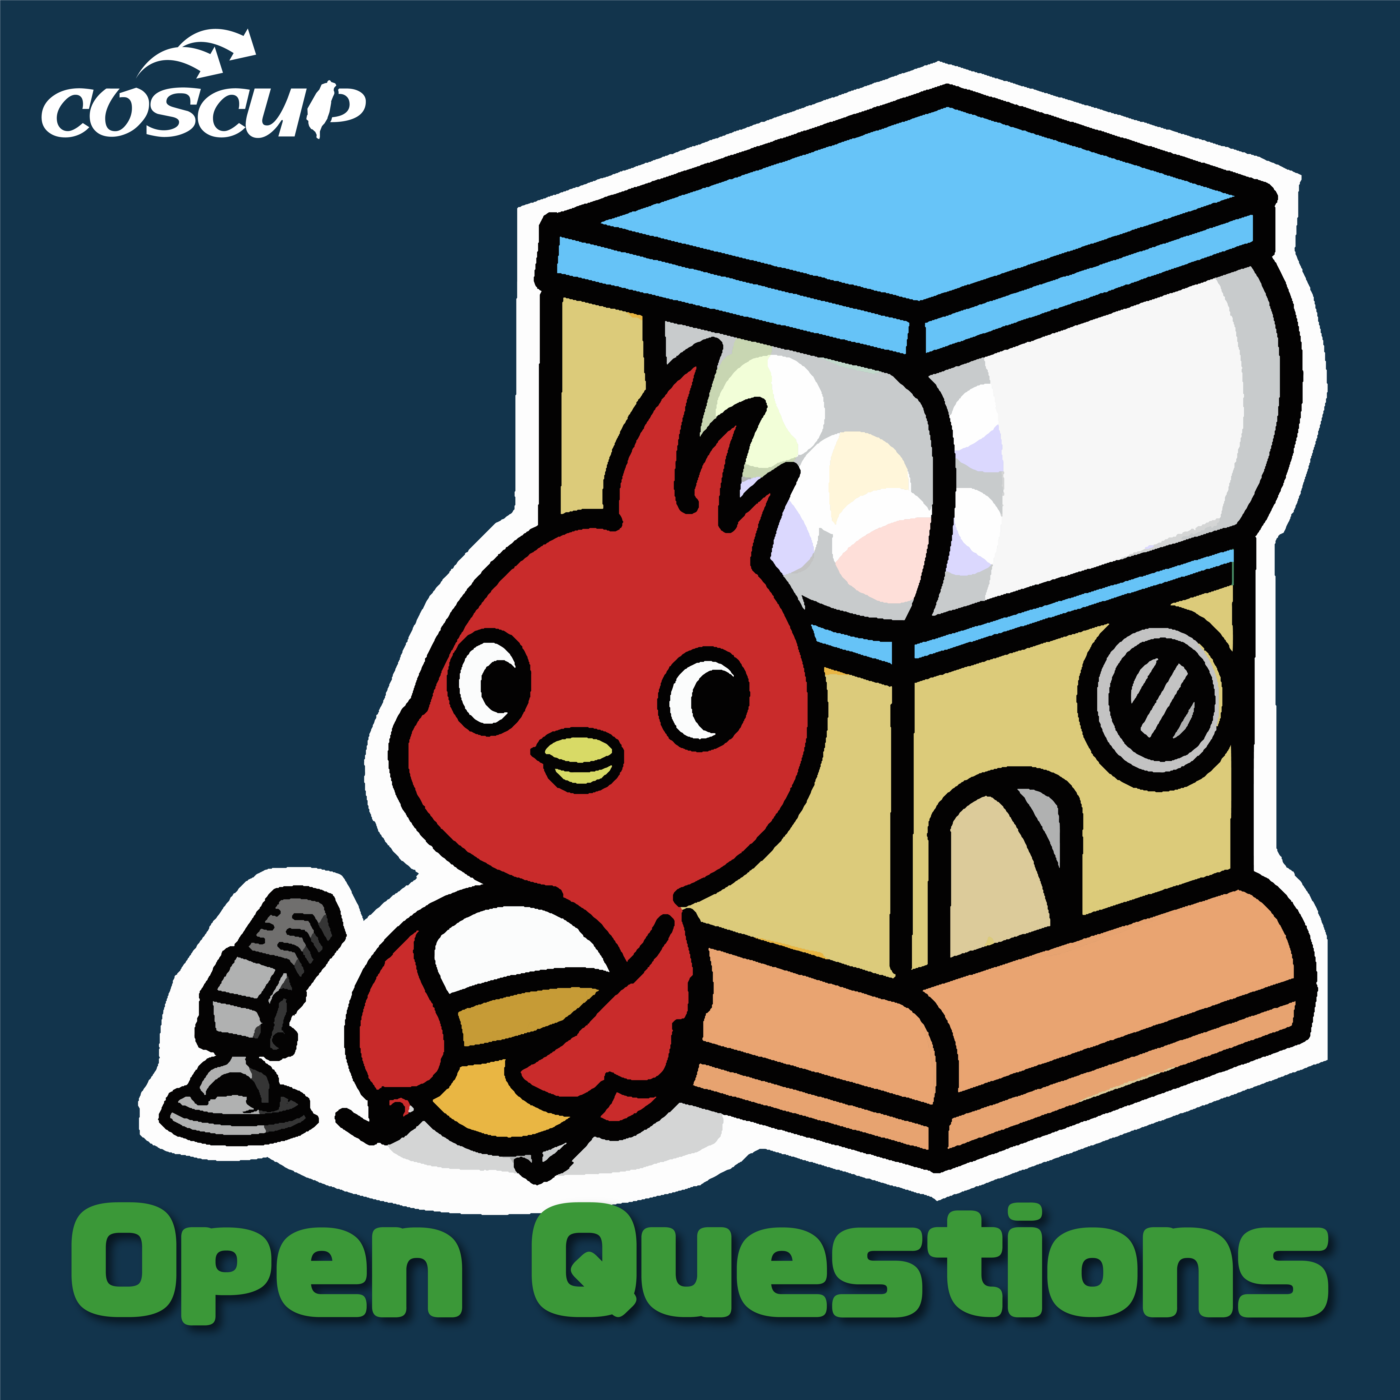 COSCUP Open Questions